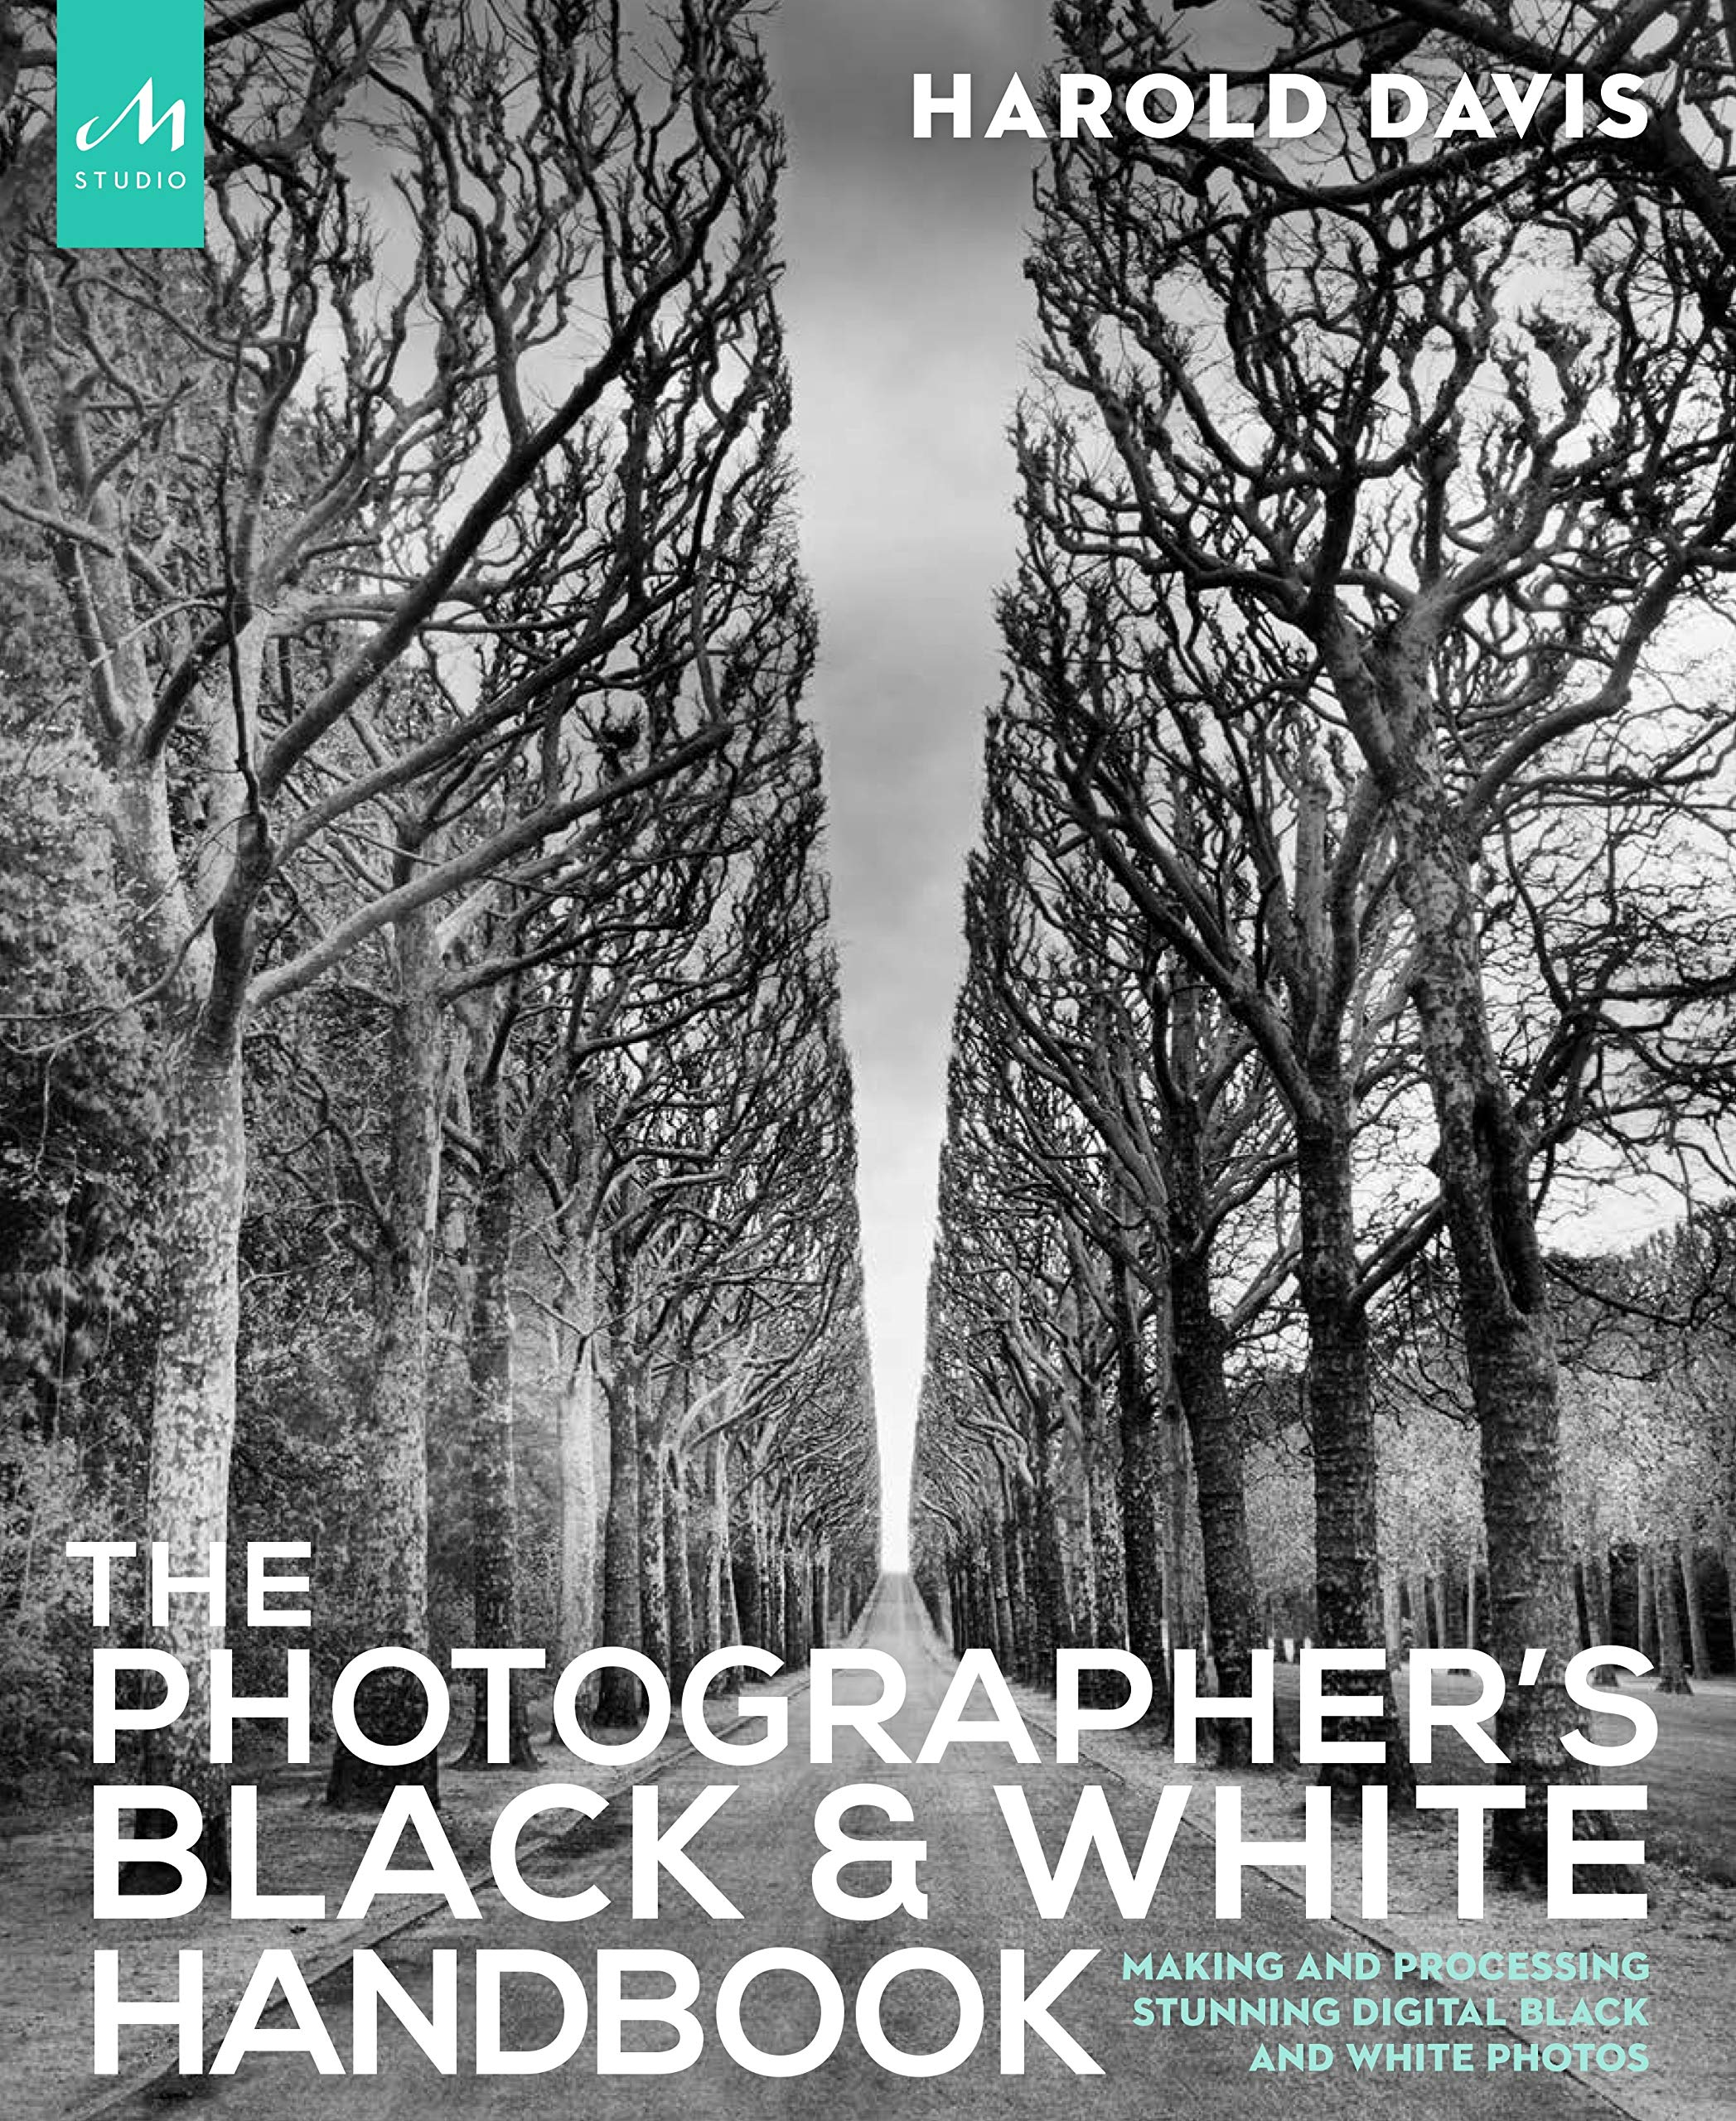 Image OfThe Photographer's Black And White Handbook: Making And Processing Stunning Digital Black And White Photos